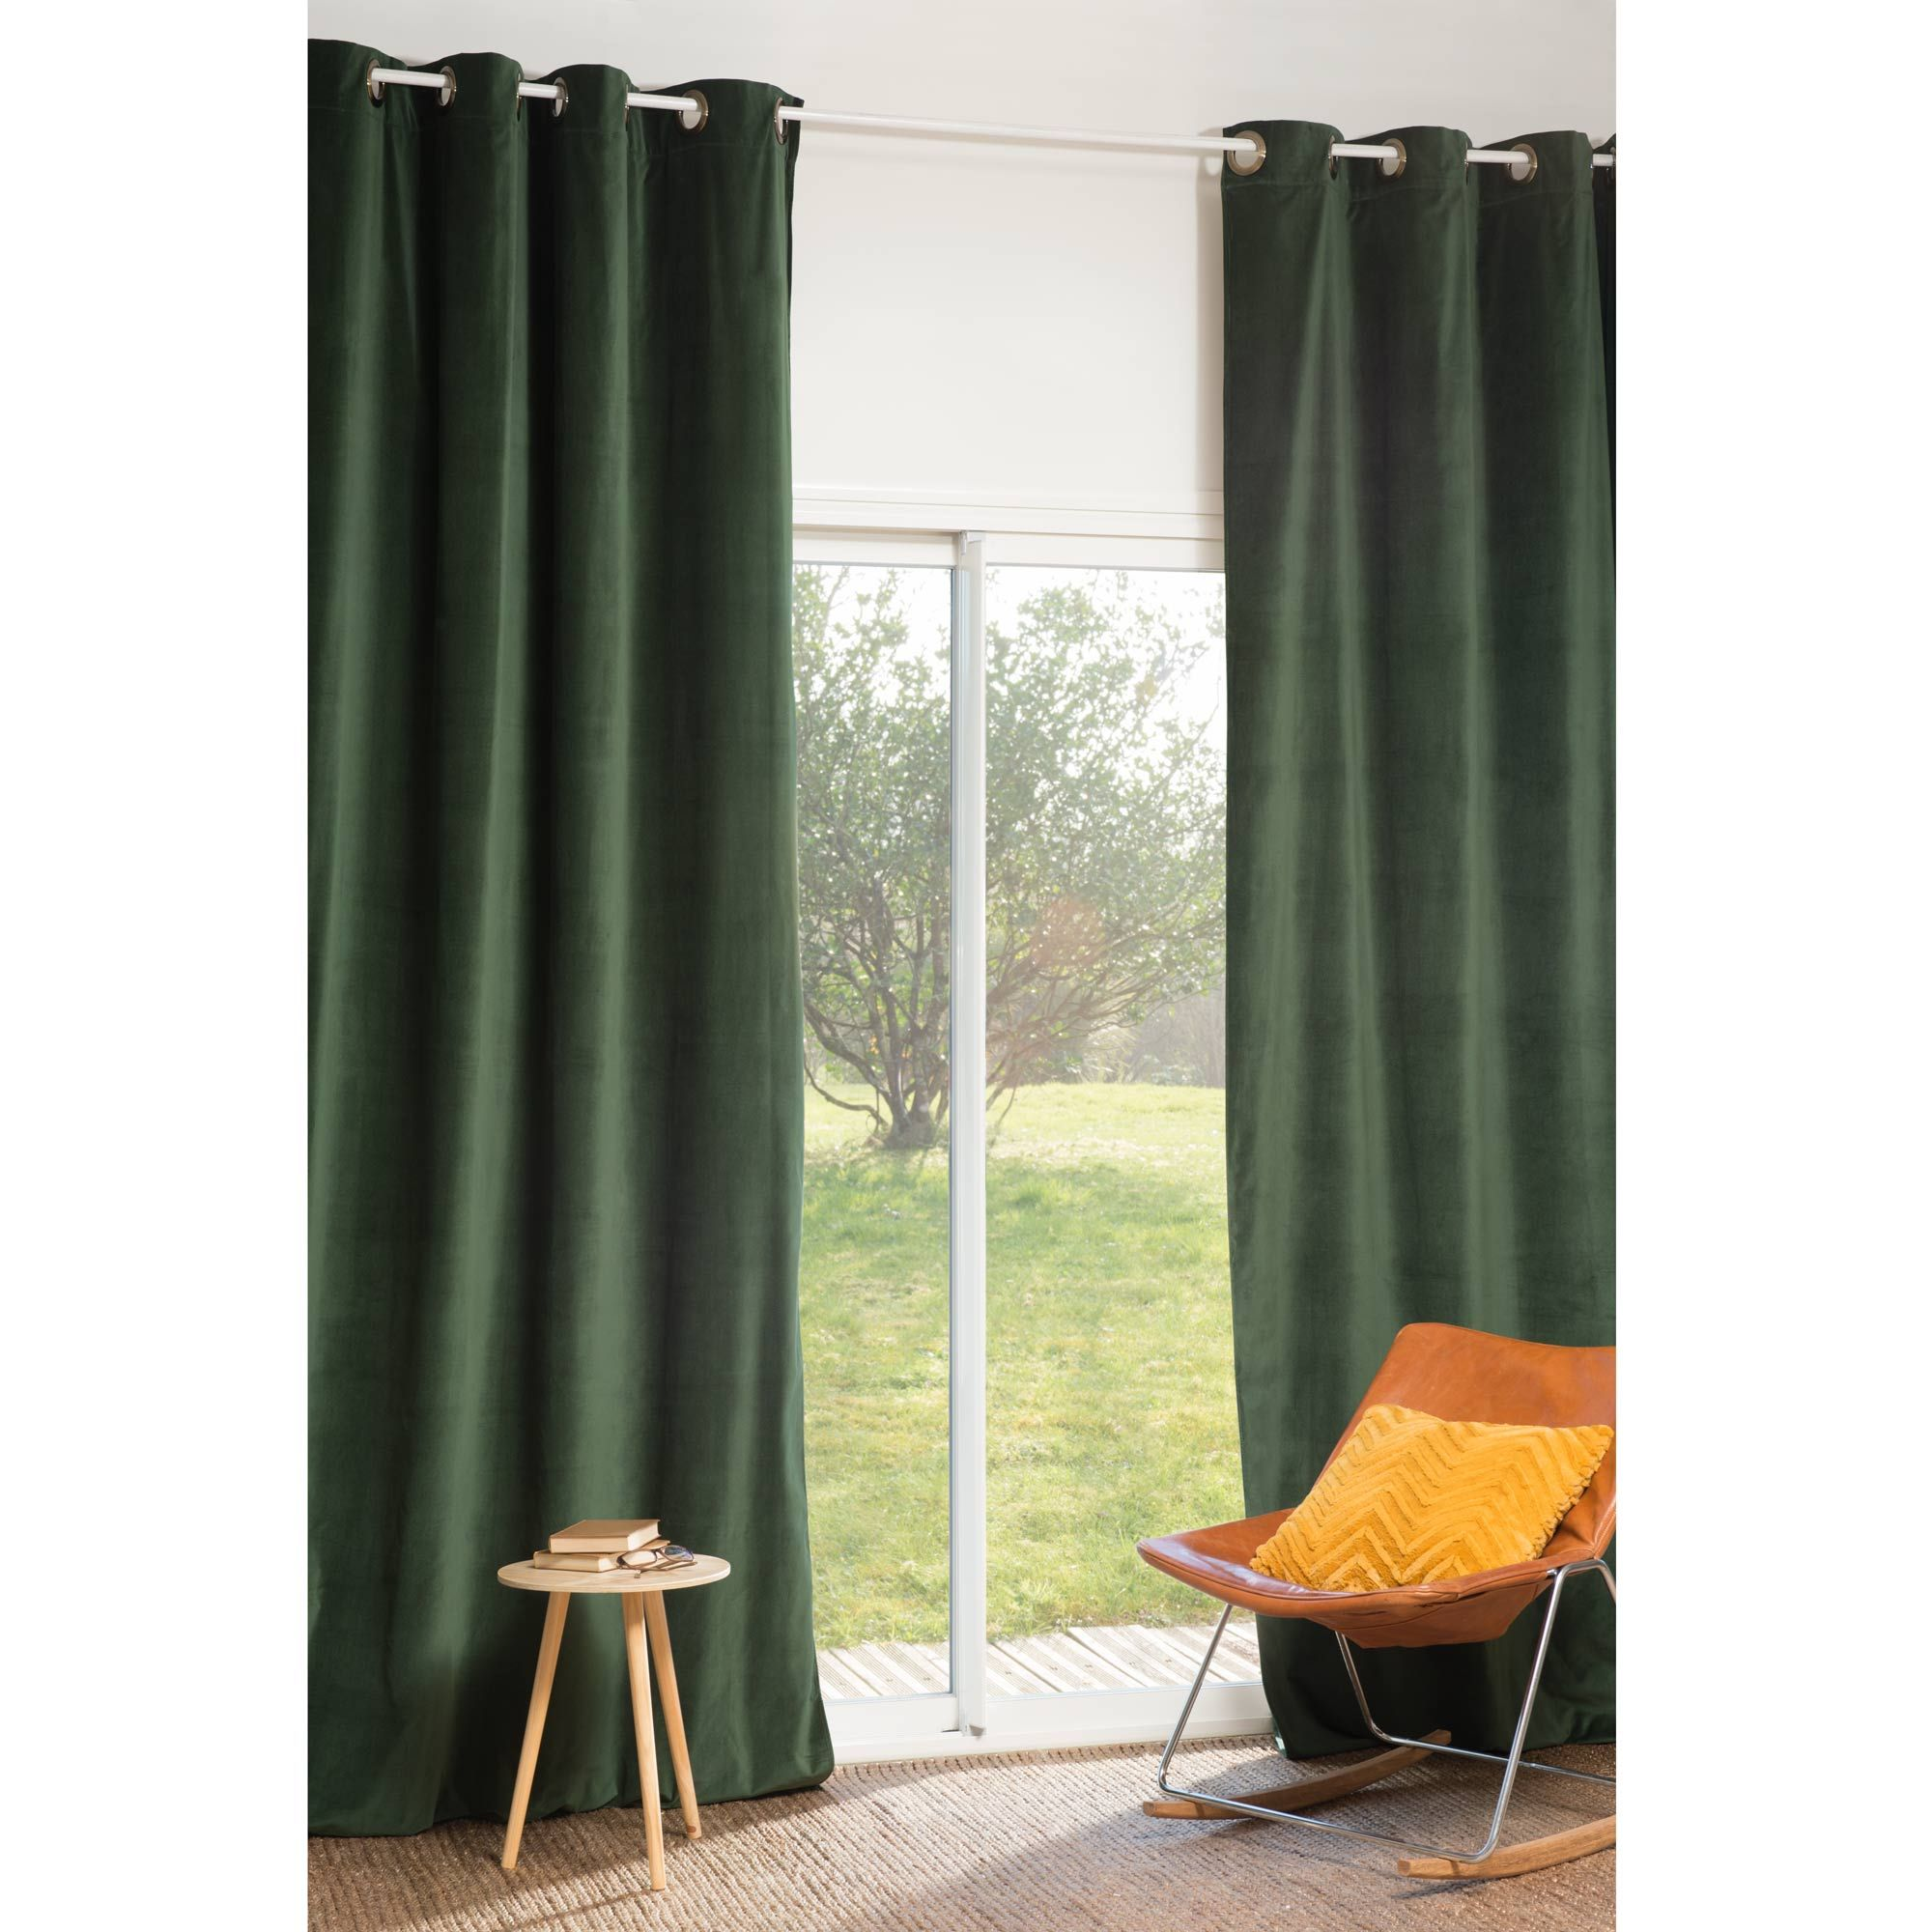 Groene Gordijnen Textiel In 2019 E M M A L U G A N O Home Curtains Living